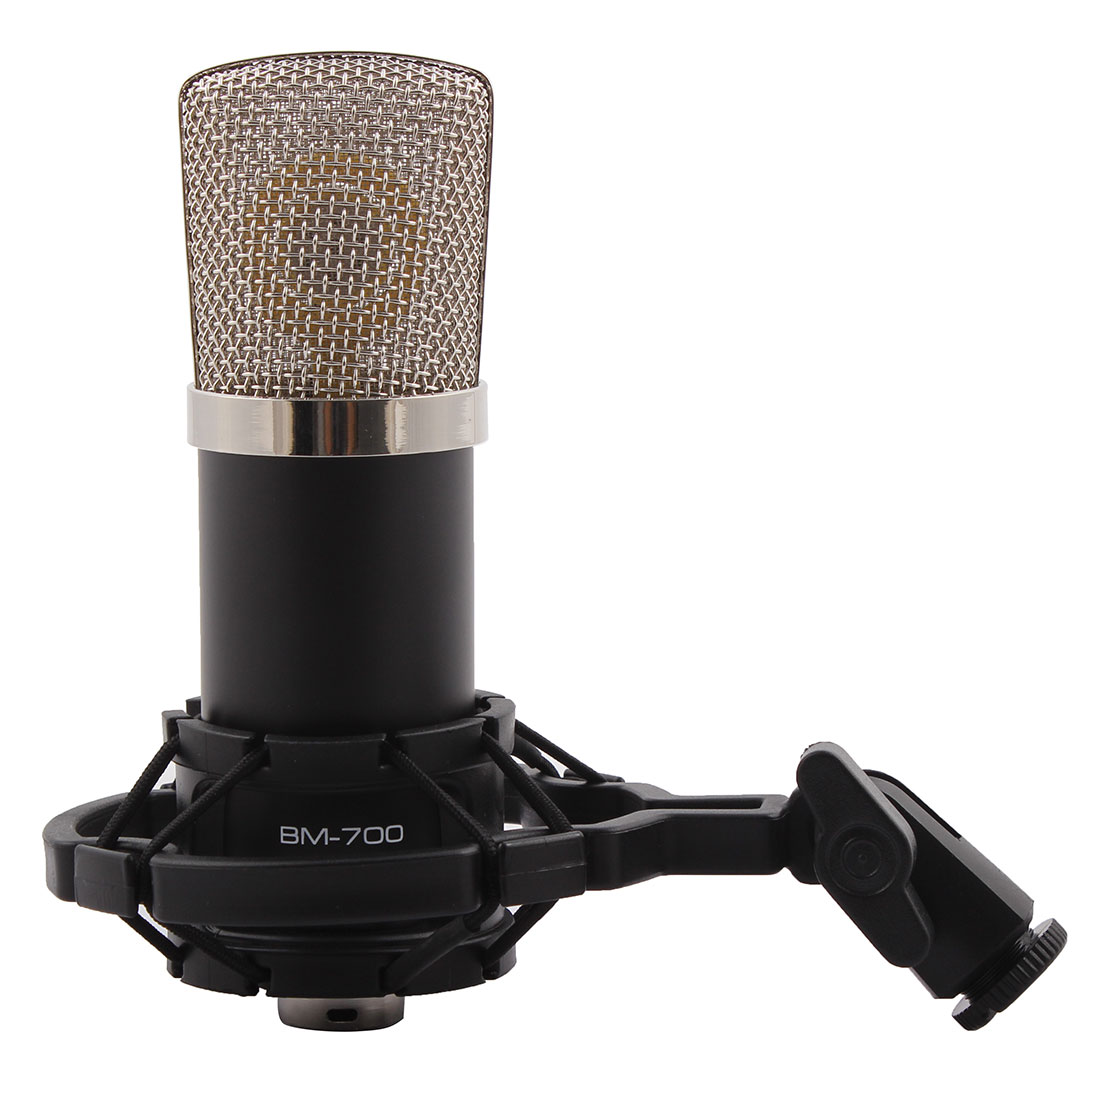 BM-700 3.5mm Wired Sound Recording Microphone for Karaoke Singing by Unique-Bargains